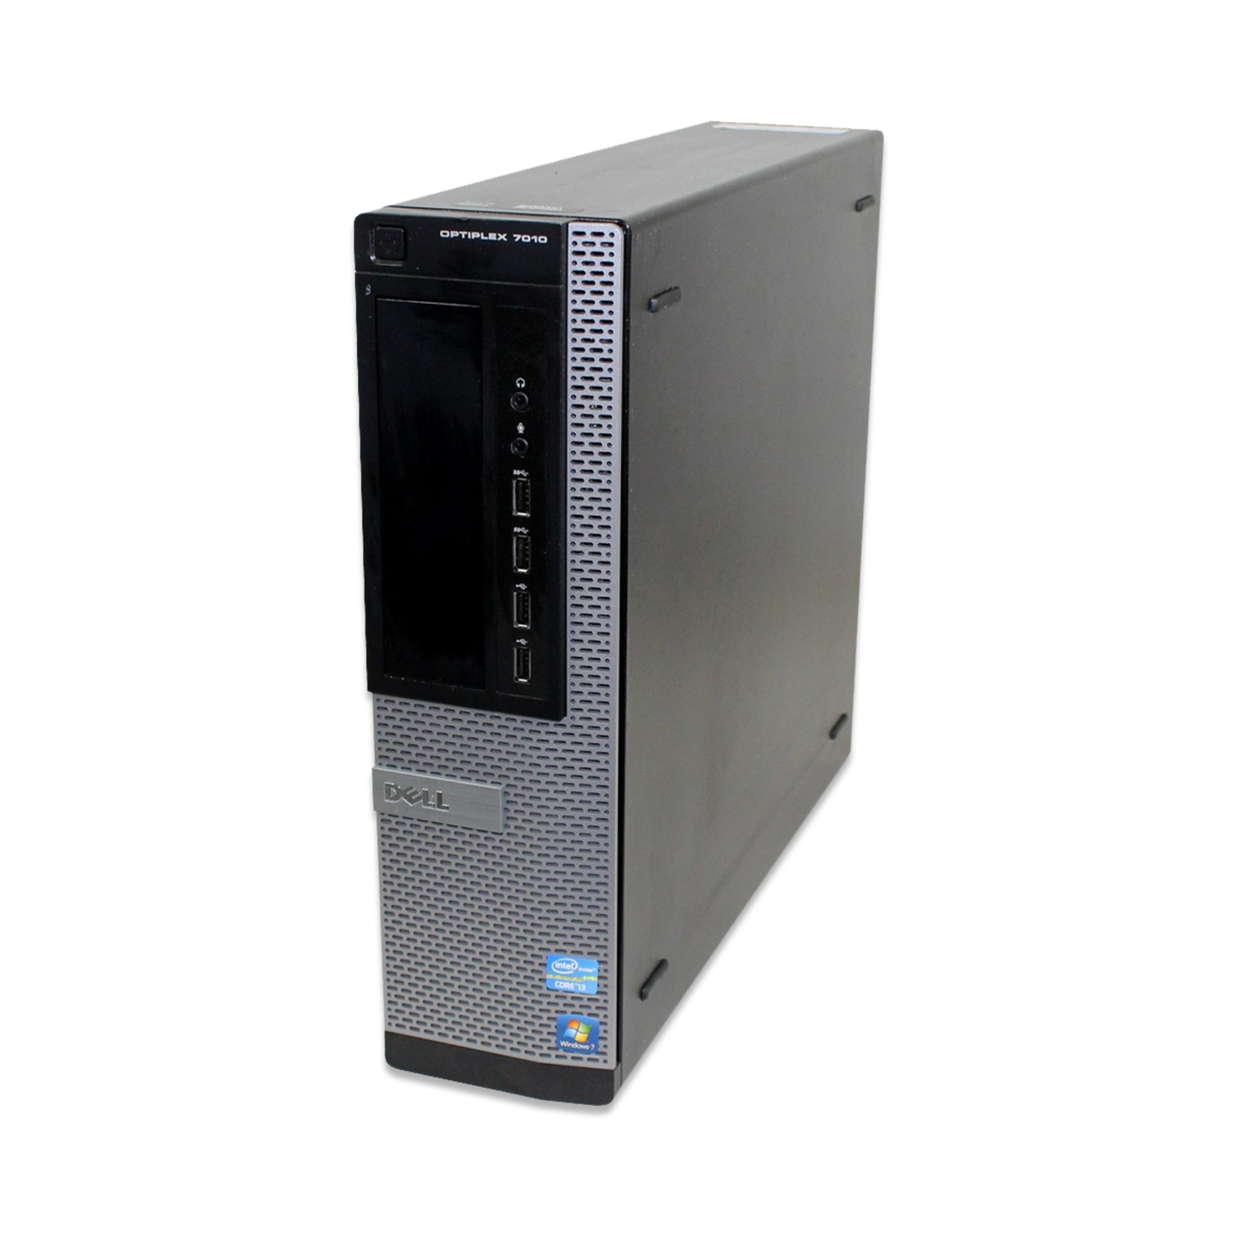 Gaming PC Dell Optiplex 7010 i5 3rd Gen. GT710 8GB RAM 128GB SSD